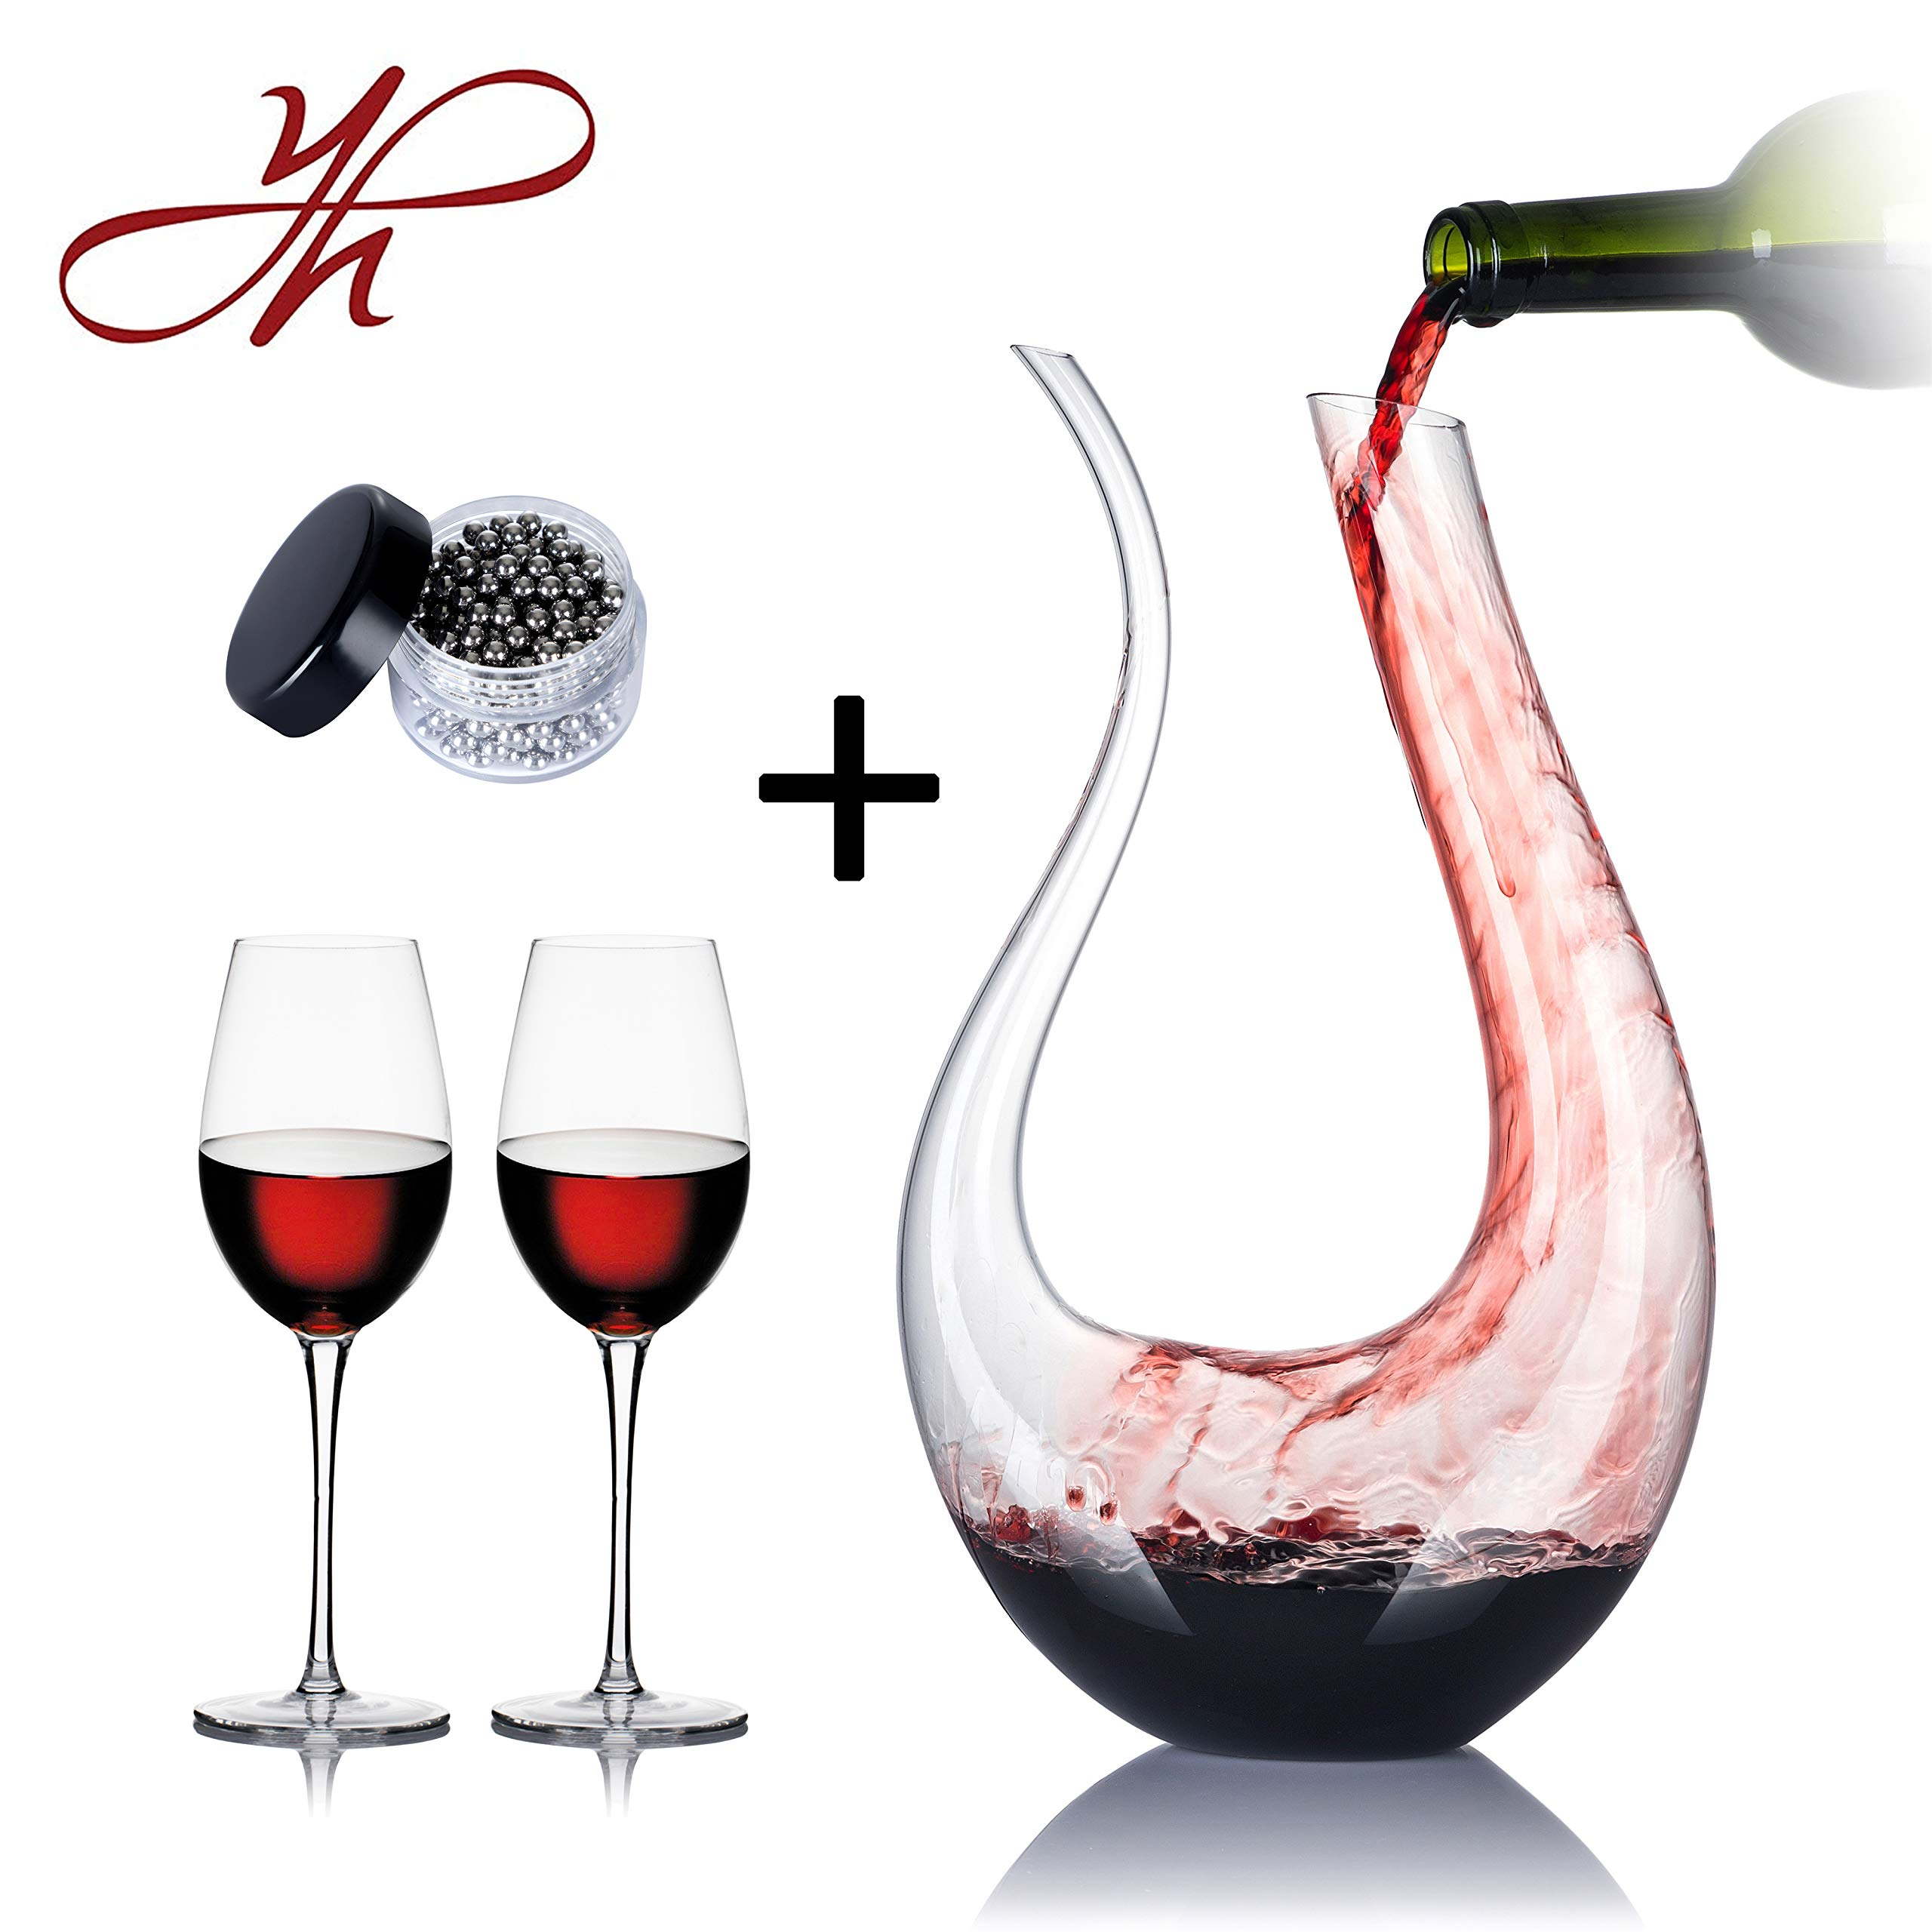 YouYah Swan Wine Decanter Set with 2 Glasses and Cleaning Beads,1750ml Hand Made Crystal,Wine Carafe,Wine Aerator,Wine Gift